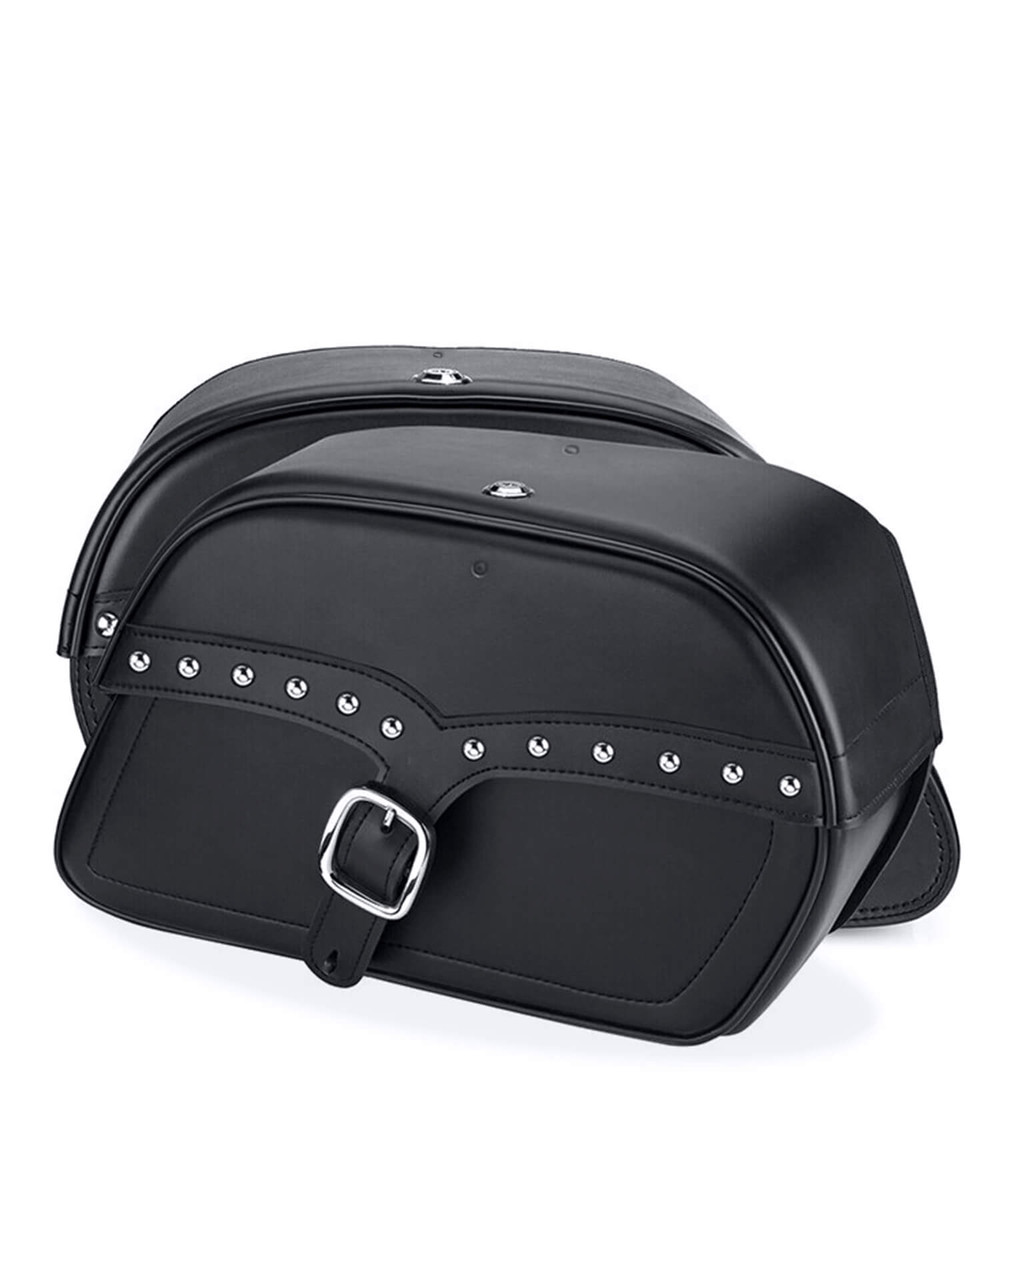 Victory Vegas Large Charger Single Strap Studded Motorcycle Saddlebags both bags view